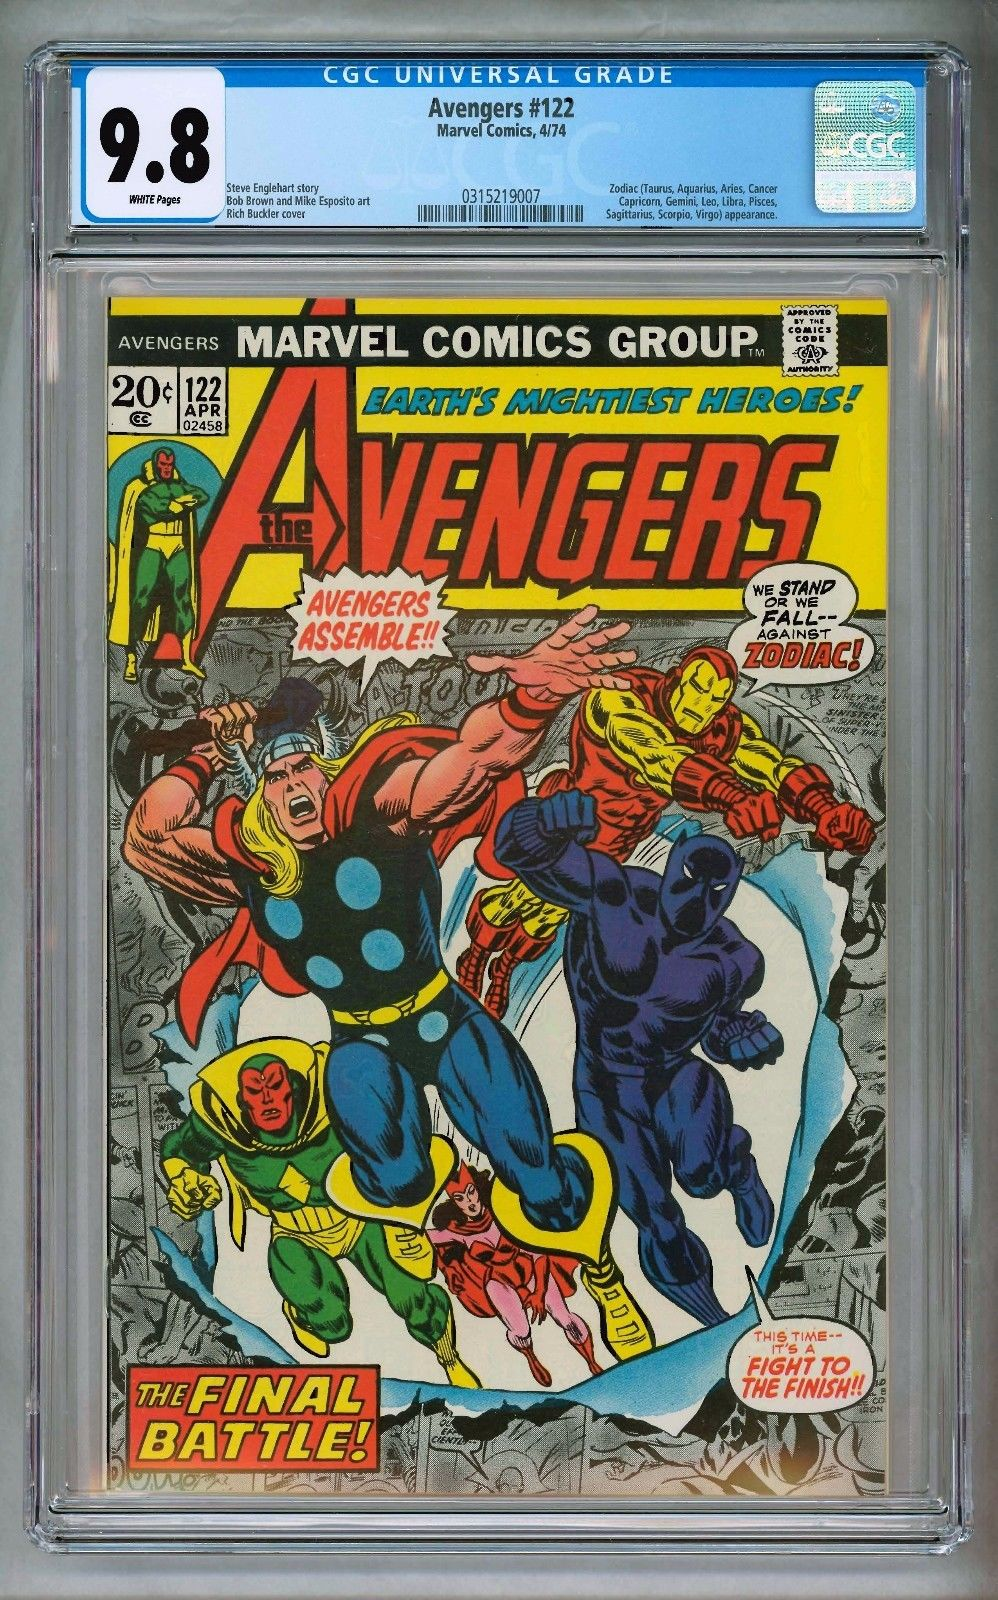 AVENGERS #122 CGC 9.8 WP BLACK PANTHER THOR IRON MAN SCARLET WITCH VISION